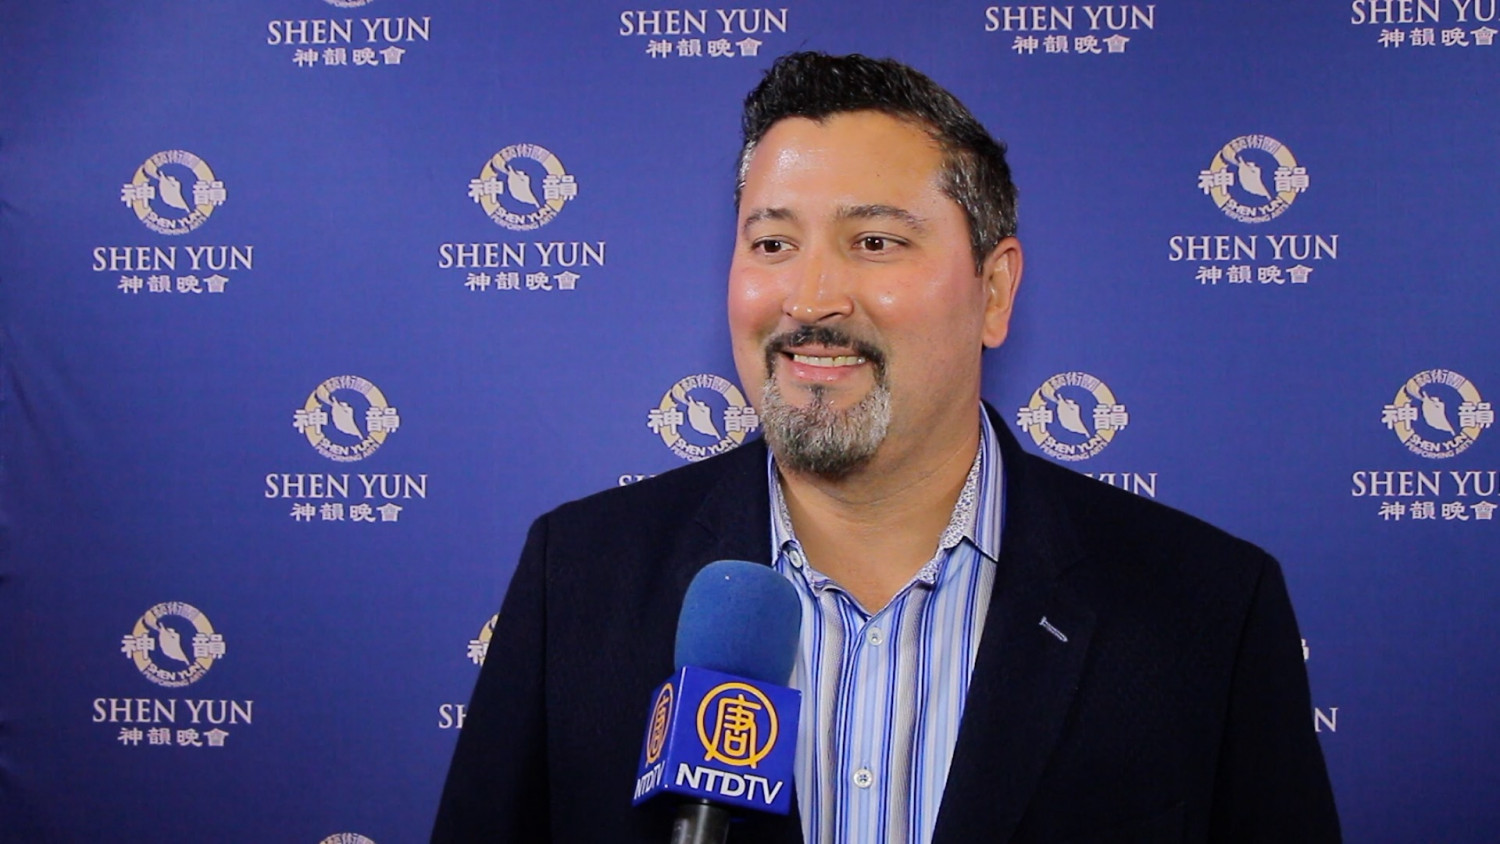 Orlando Audience Admires Shen Yun's Efforts to Bring Back The Traditional Values